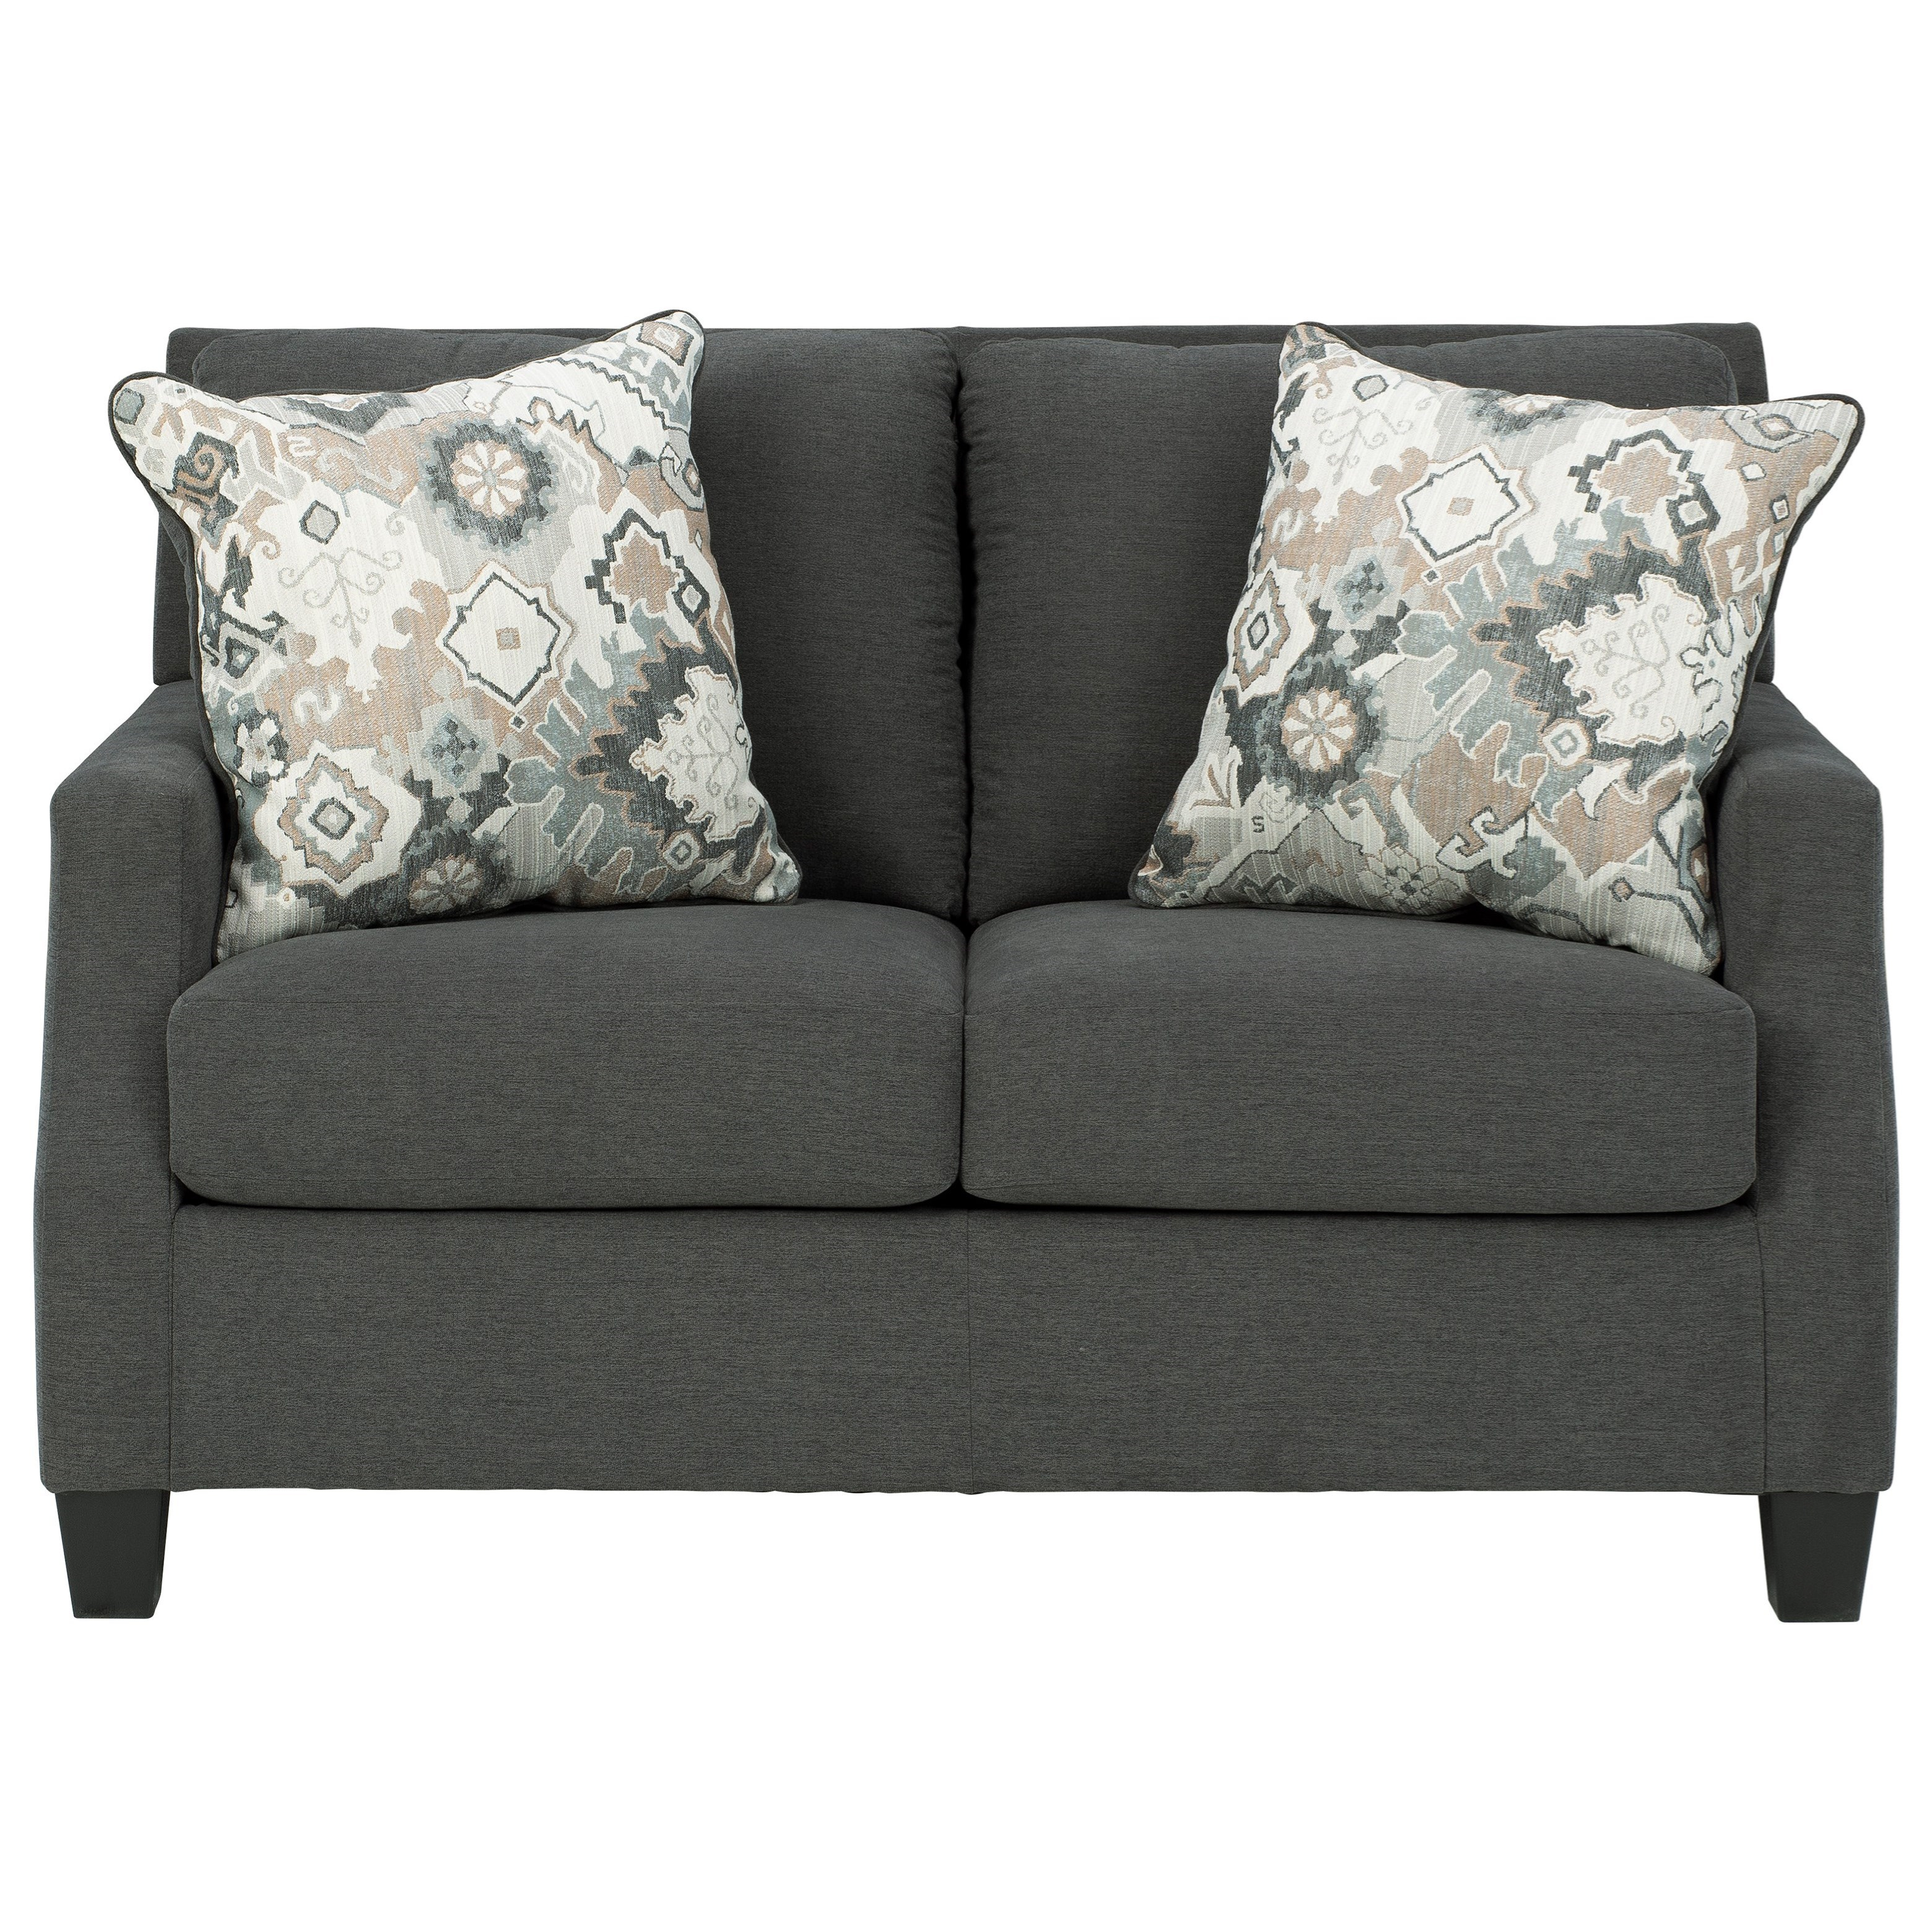 Bayonne Loveseat by Signature Design by Ashley at Furniture Superstore - Rochester, MN